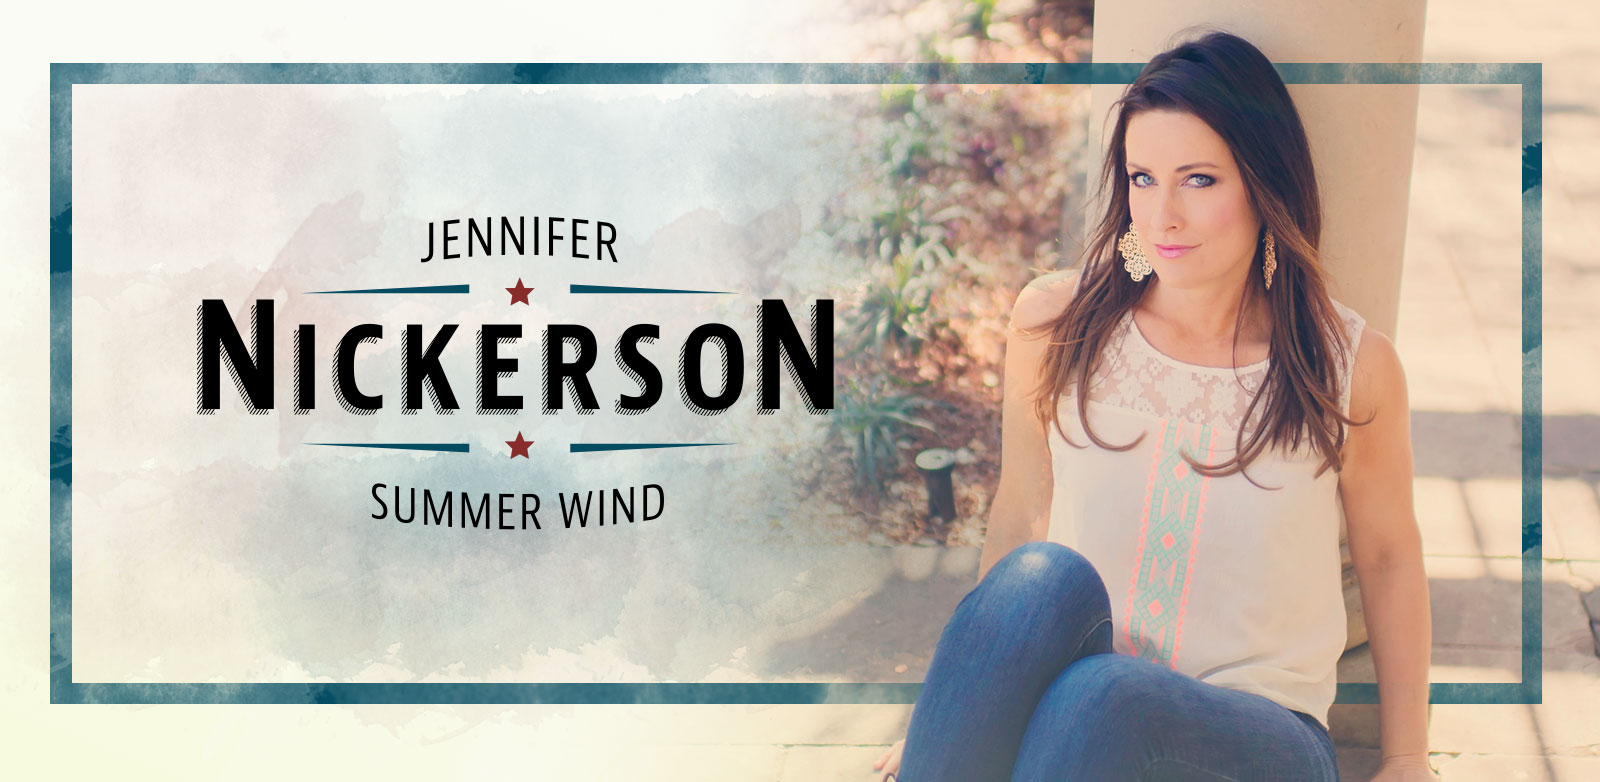 Jennifer Nickerson - Summer Wind